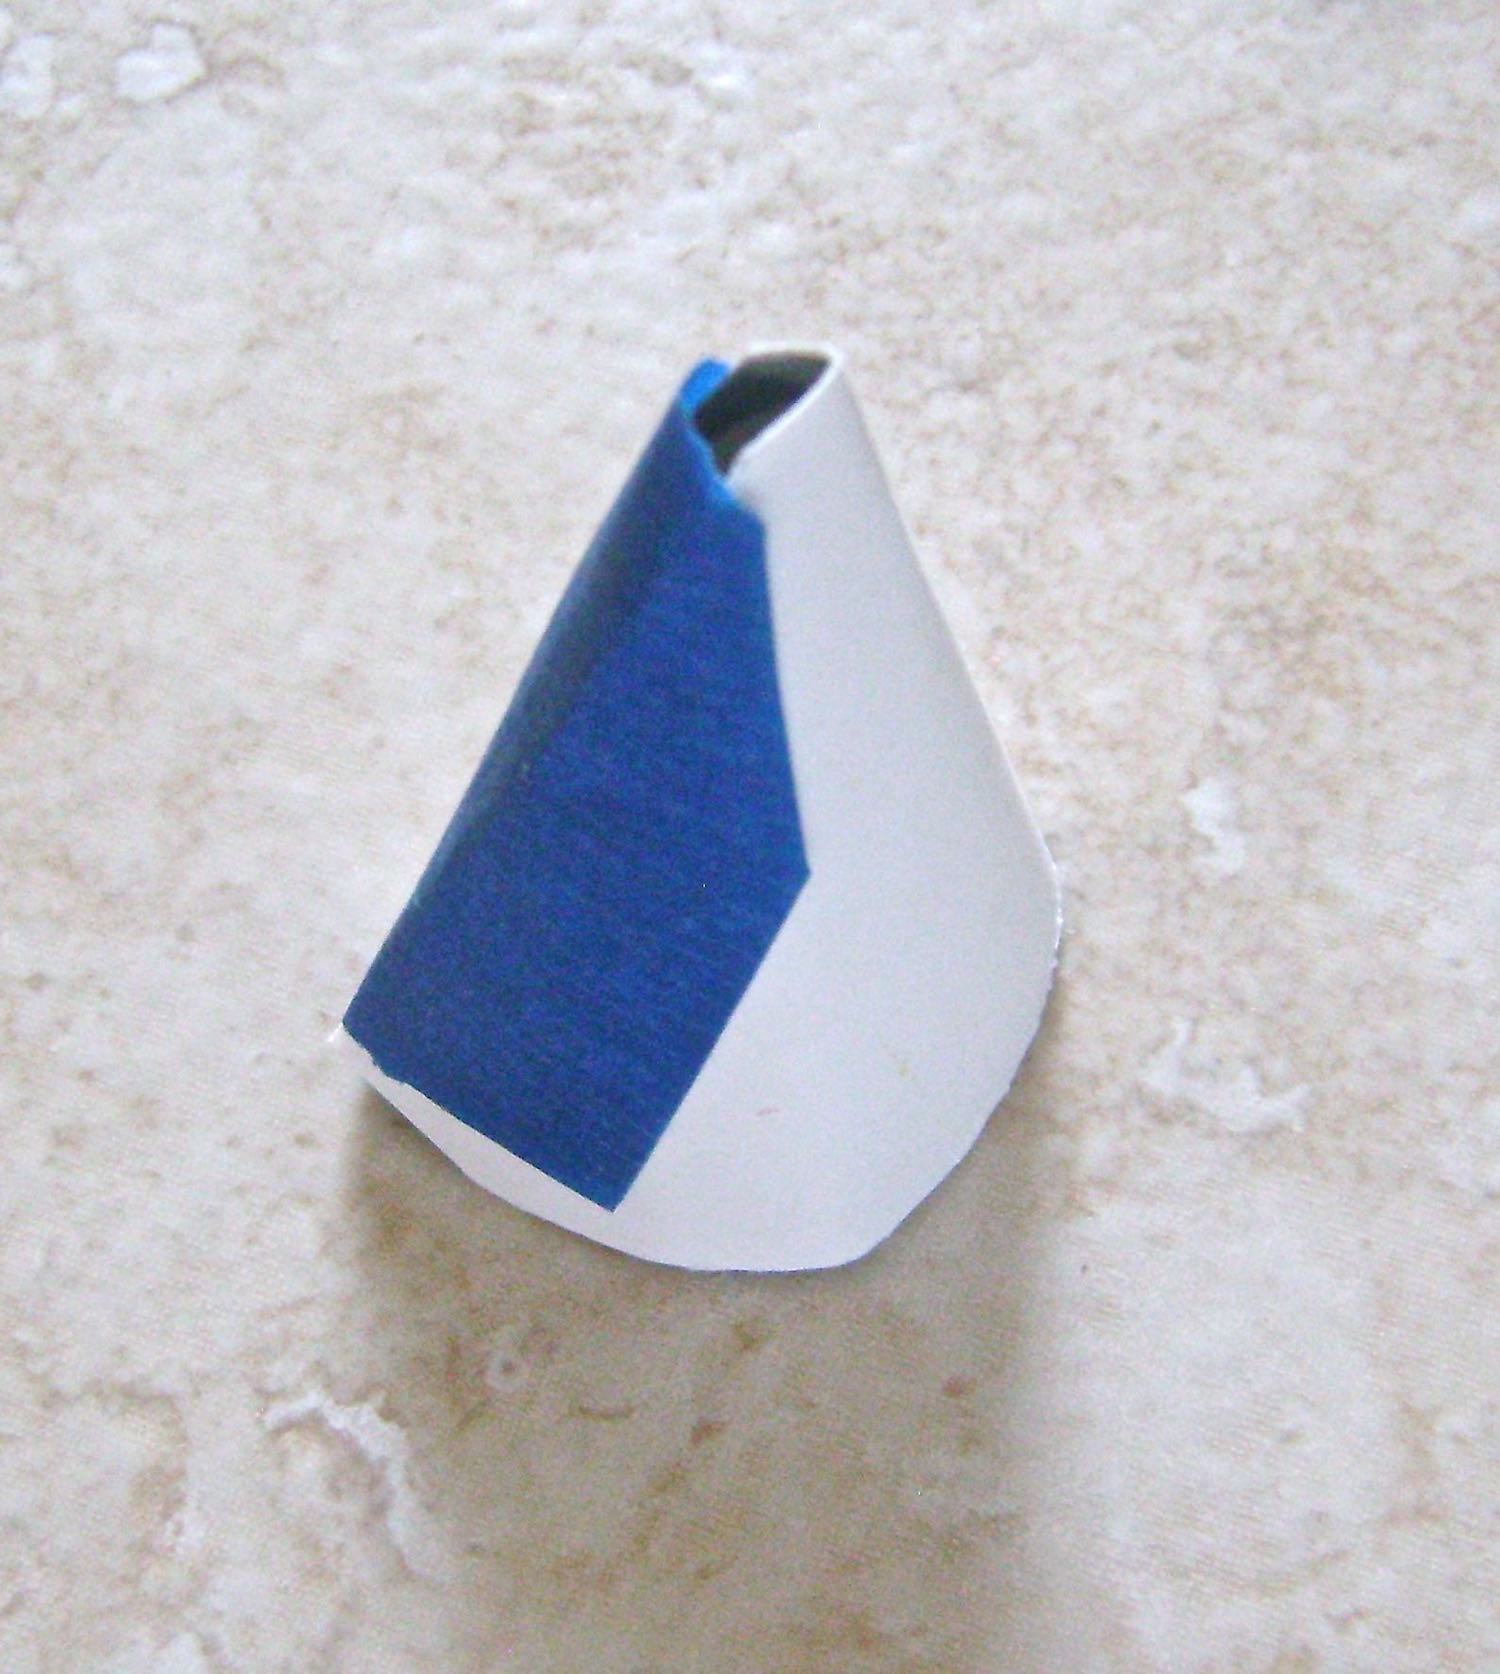 step 5 - Match up the long straight edges of the cone template and tape them together.